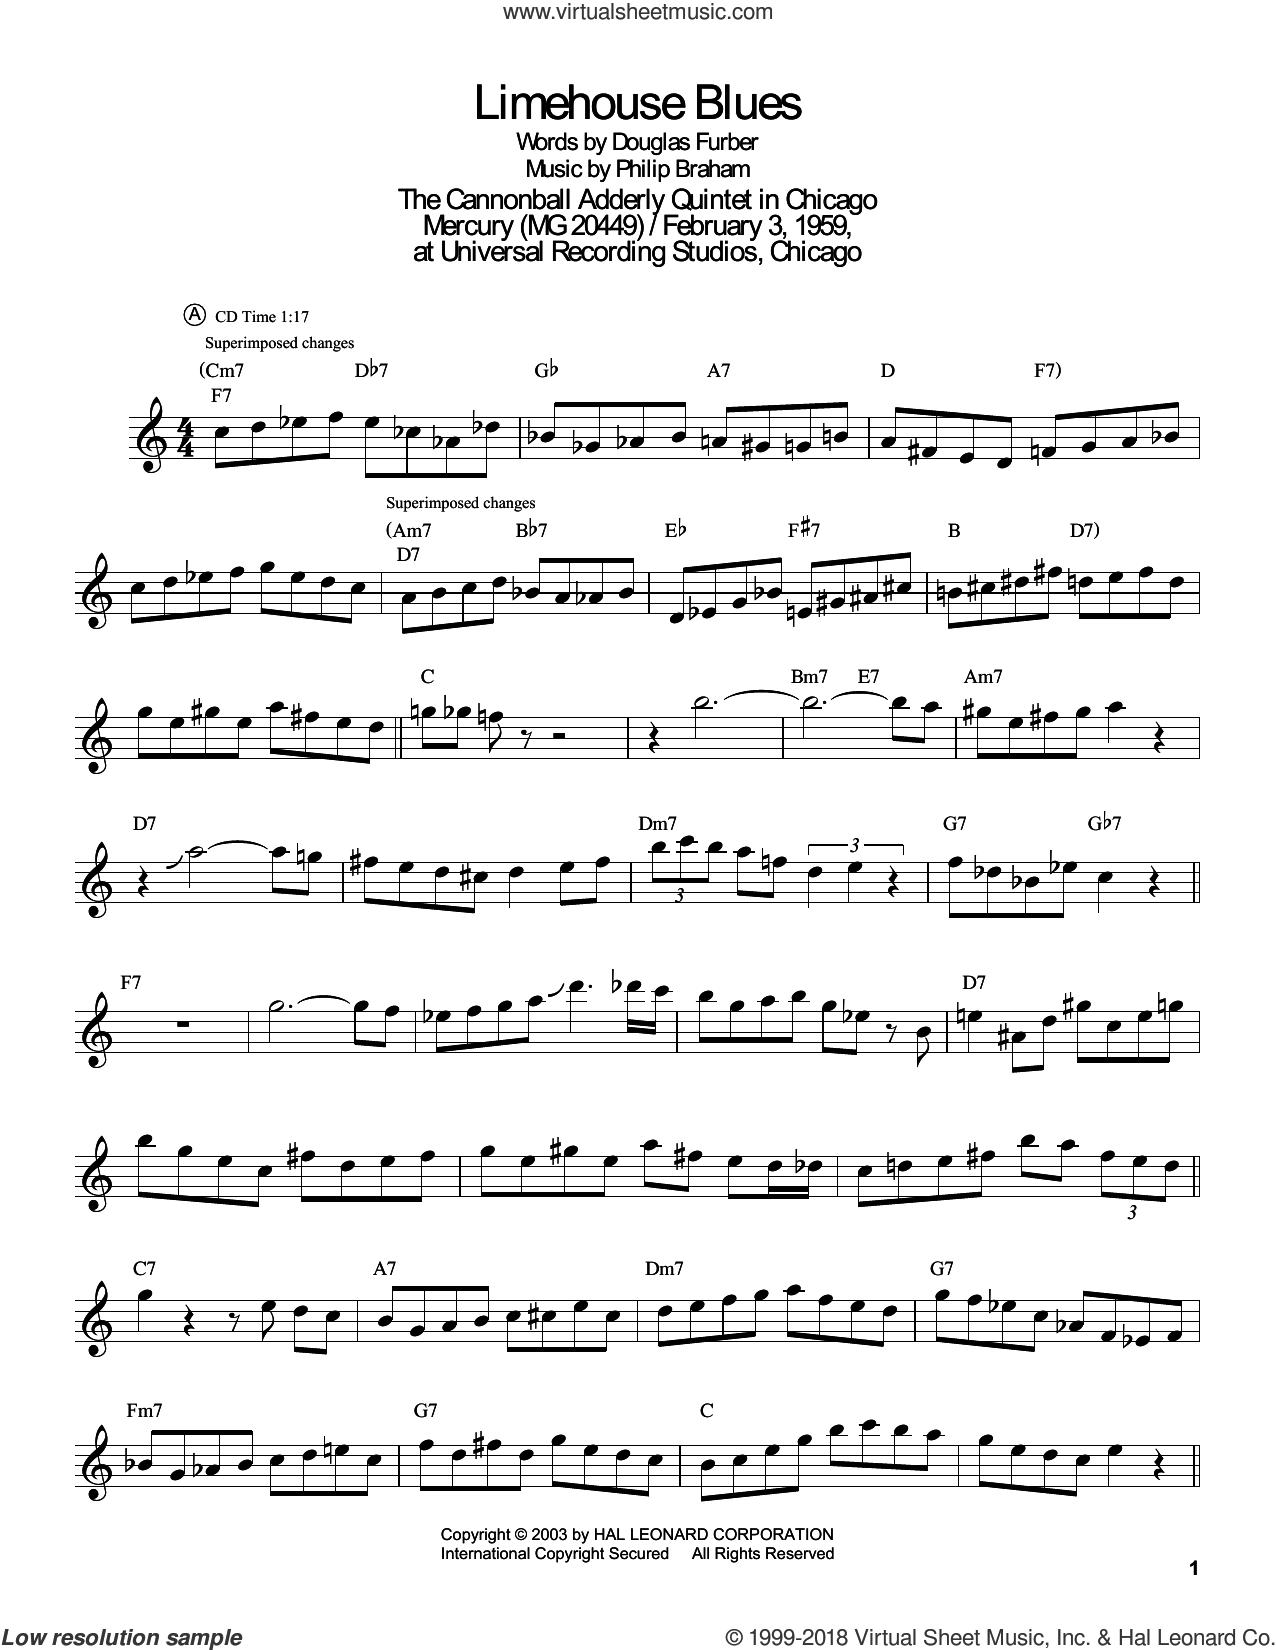 Limehouse Blues sheet music for tenor saxophone solo (transcription) by John Coltrane, Douglas Furber and Philip Braham, intermediate tenor saxophone (transcription)